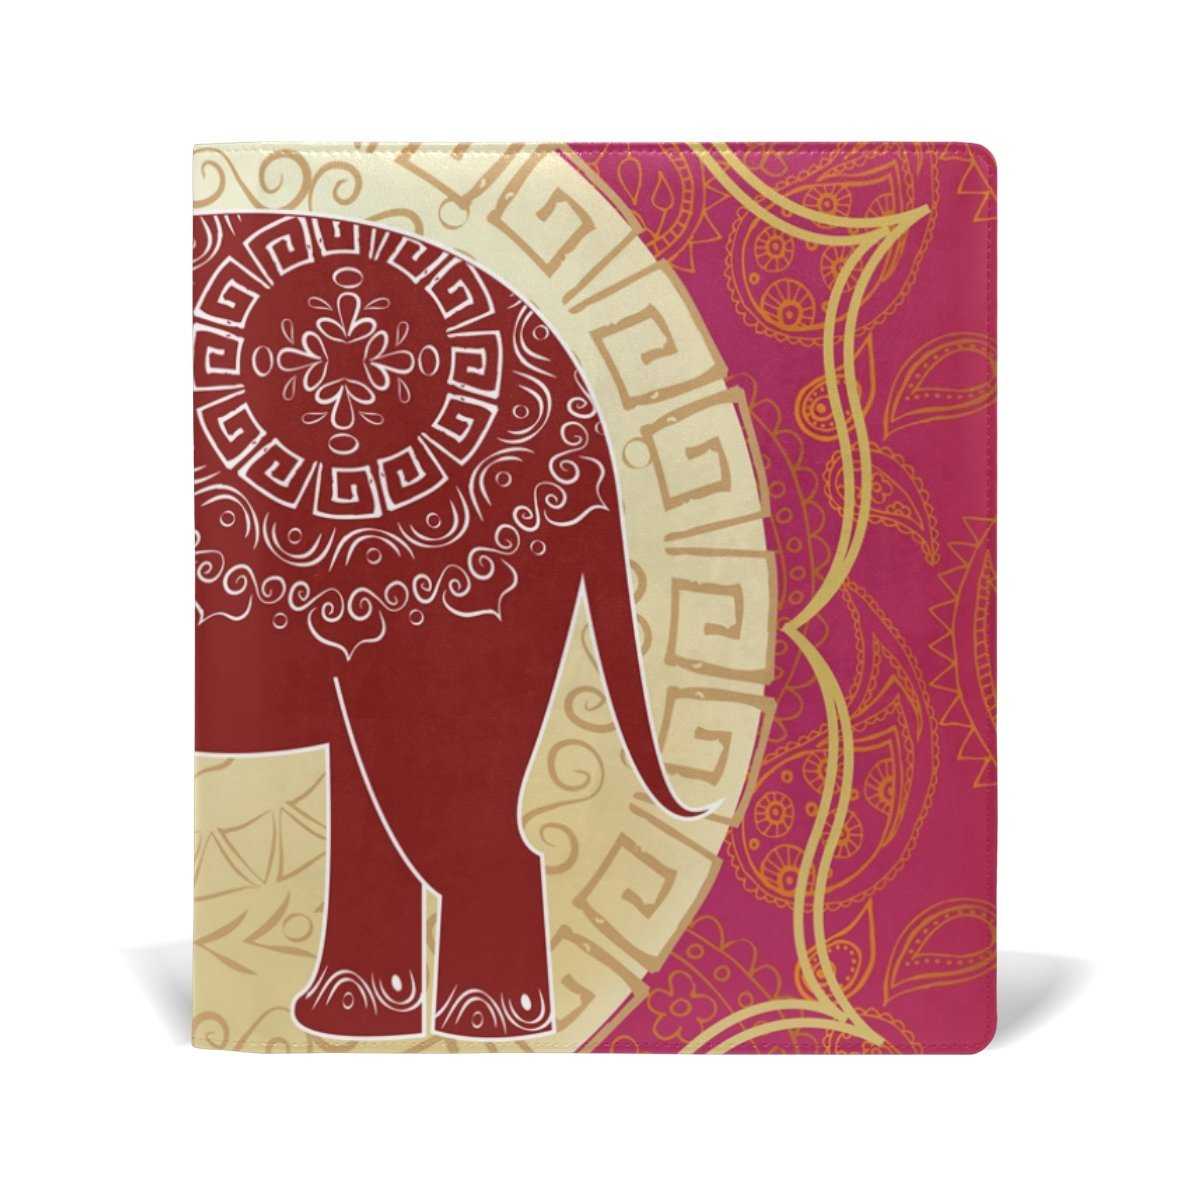 Sunlome Indian Elephant Pattern Stretchable PU Leather Book Cover 9 x 11 Inches Fits for School Hardcover Textbooks